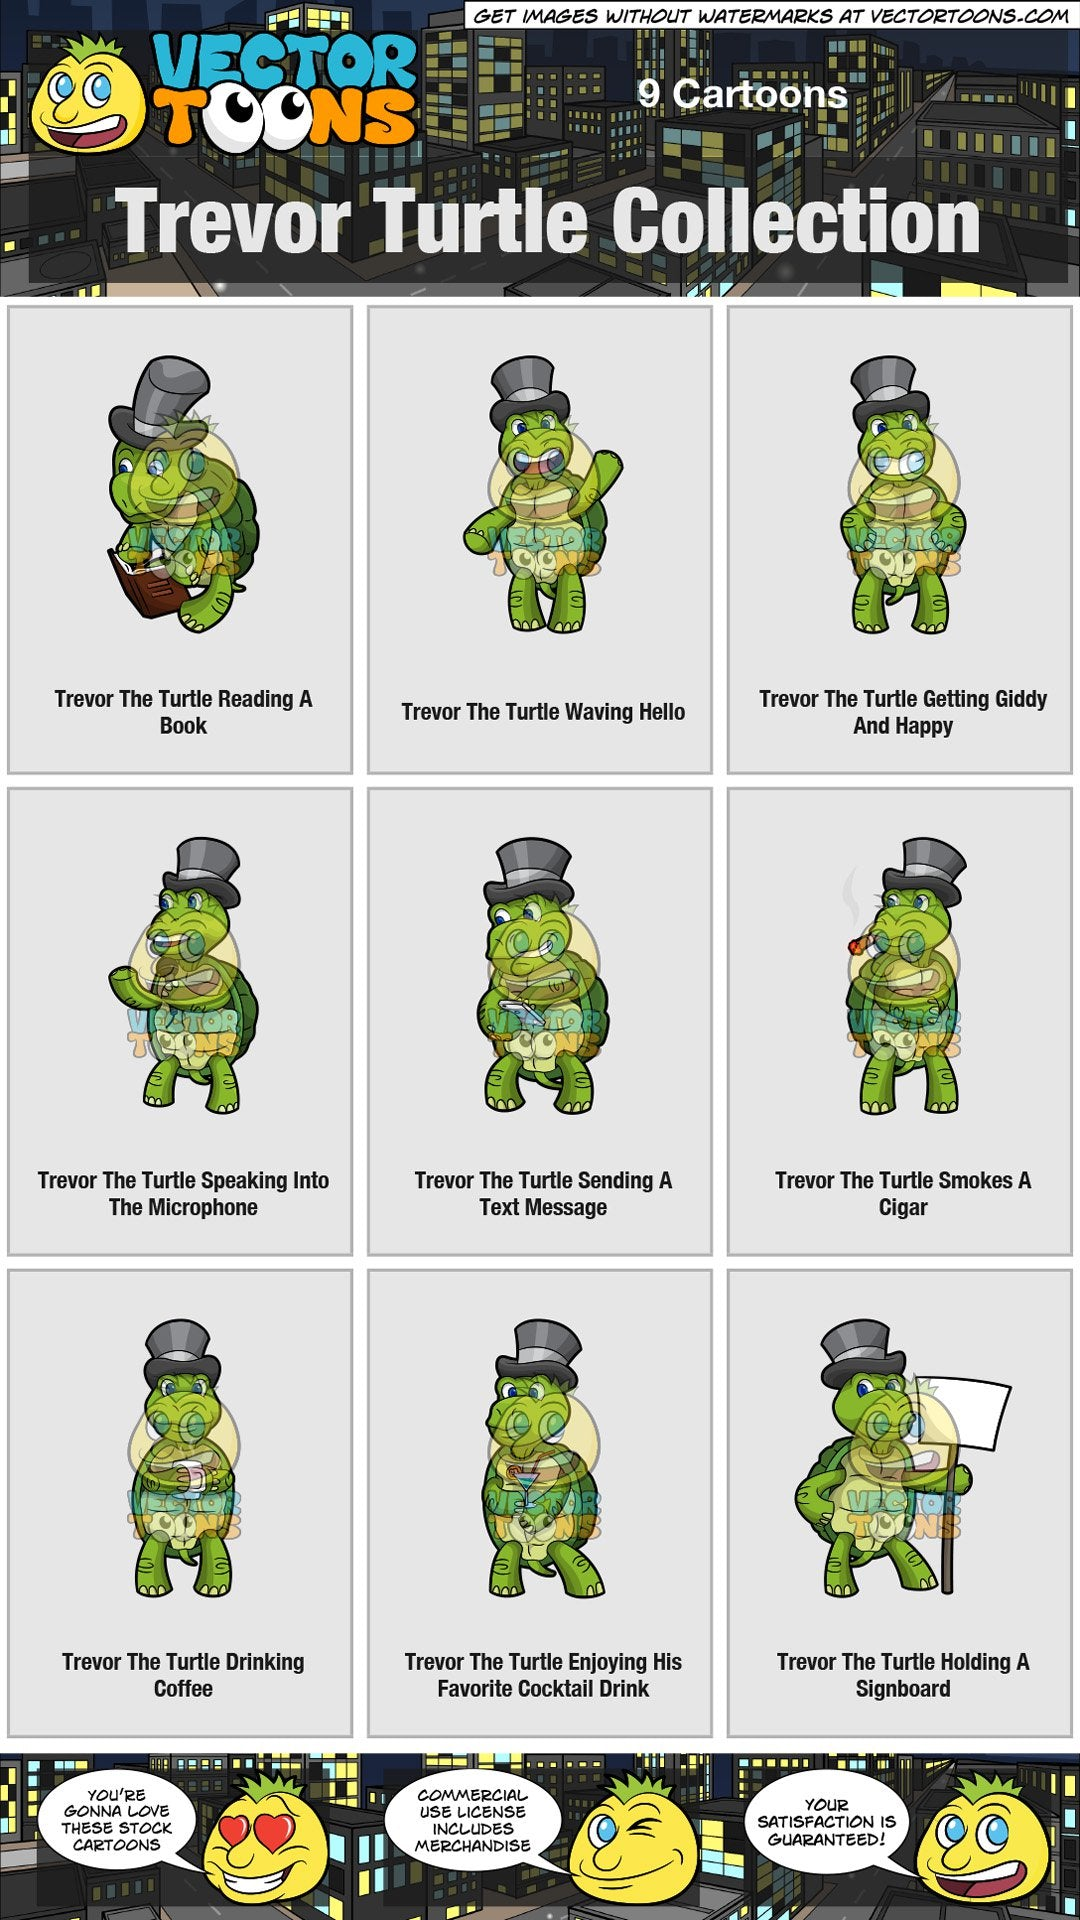 Trevor Turtle Collection